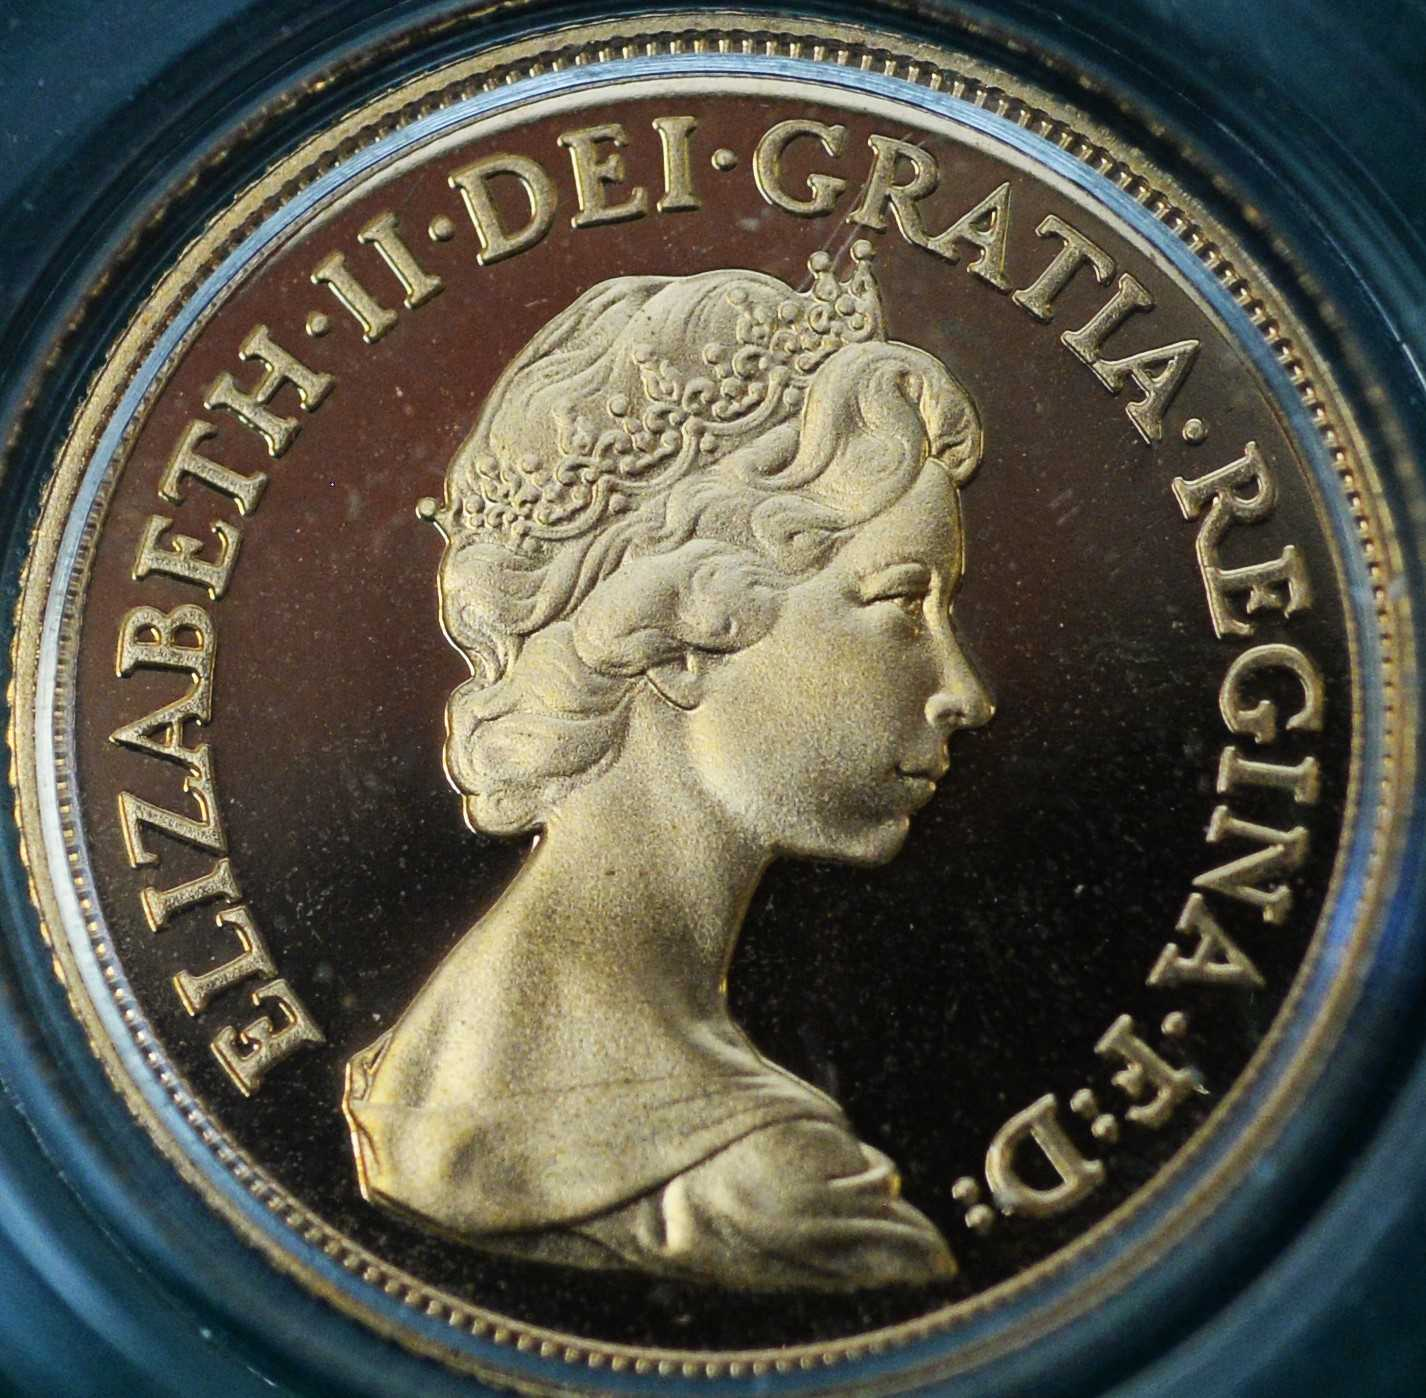 1980 four coin gold proof sovereign set - Image 4 of 8